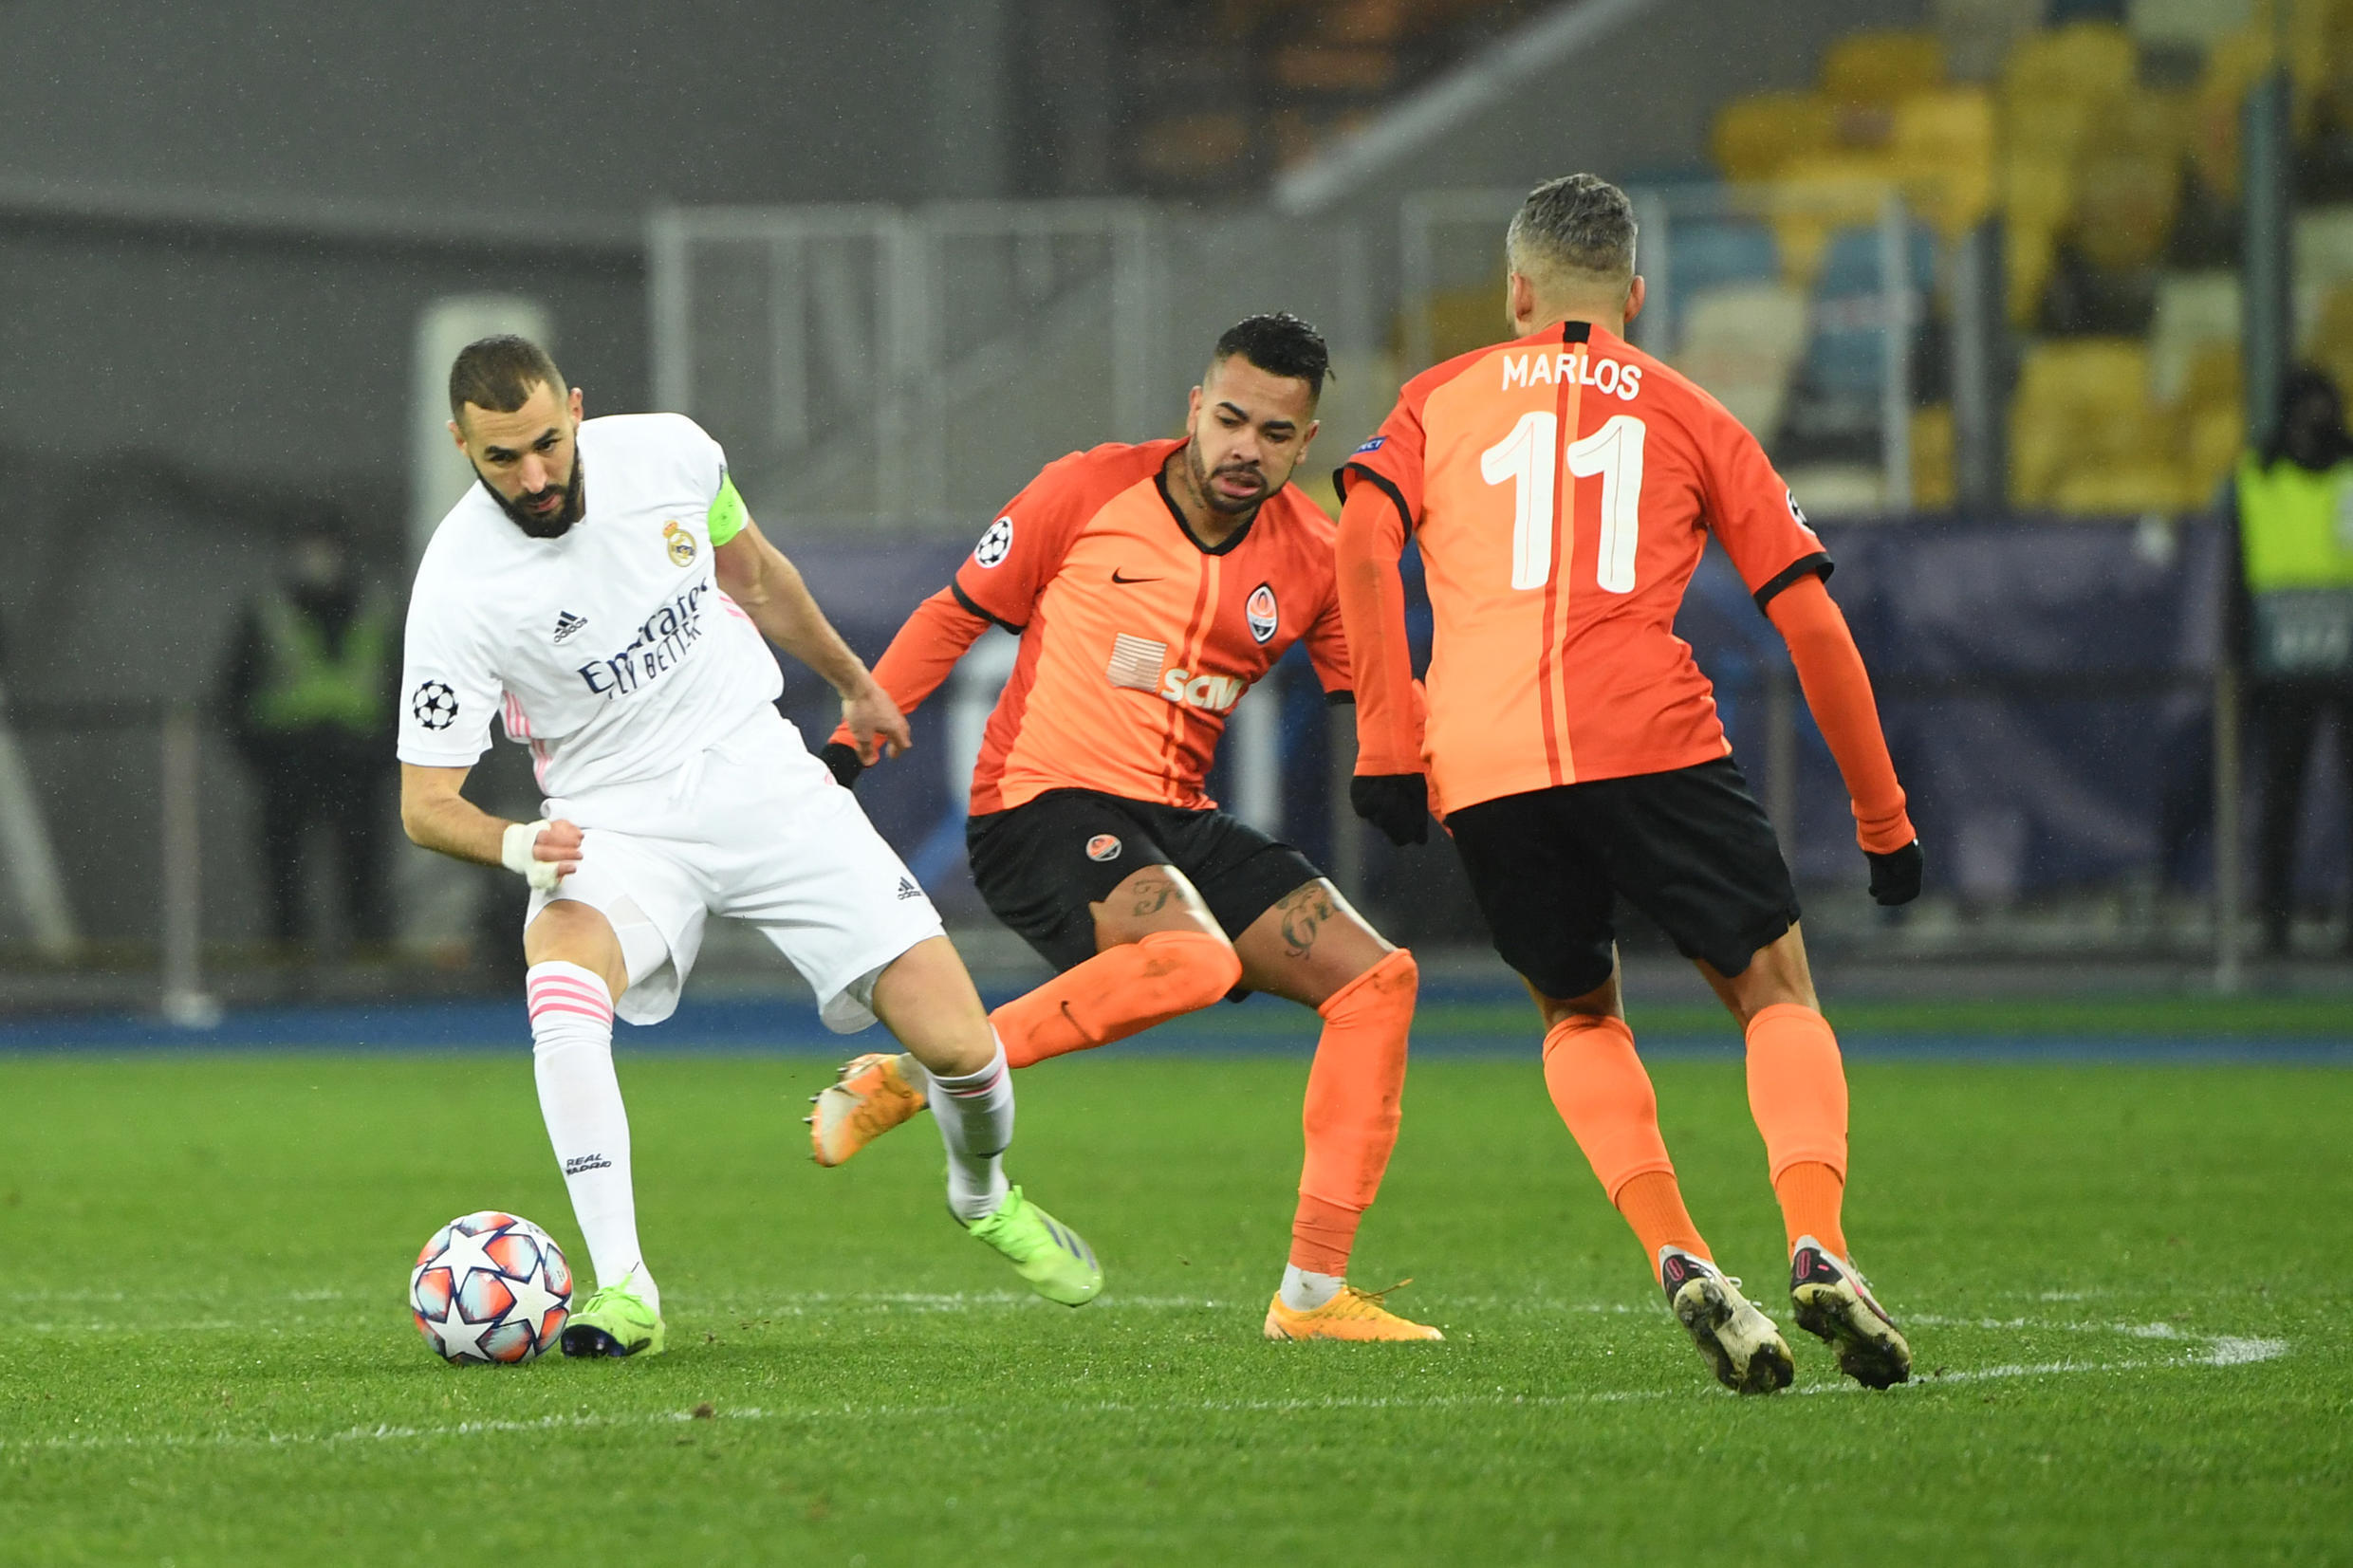 Dentinho (C) scored the first goal for Shakhtar Donetsk as they beat Real Madrid for the second time in this season's Champions League